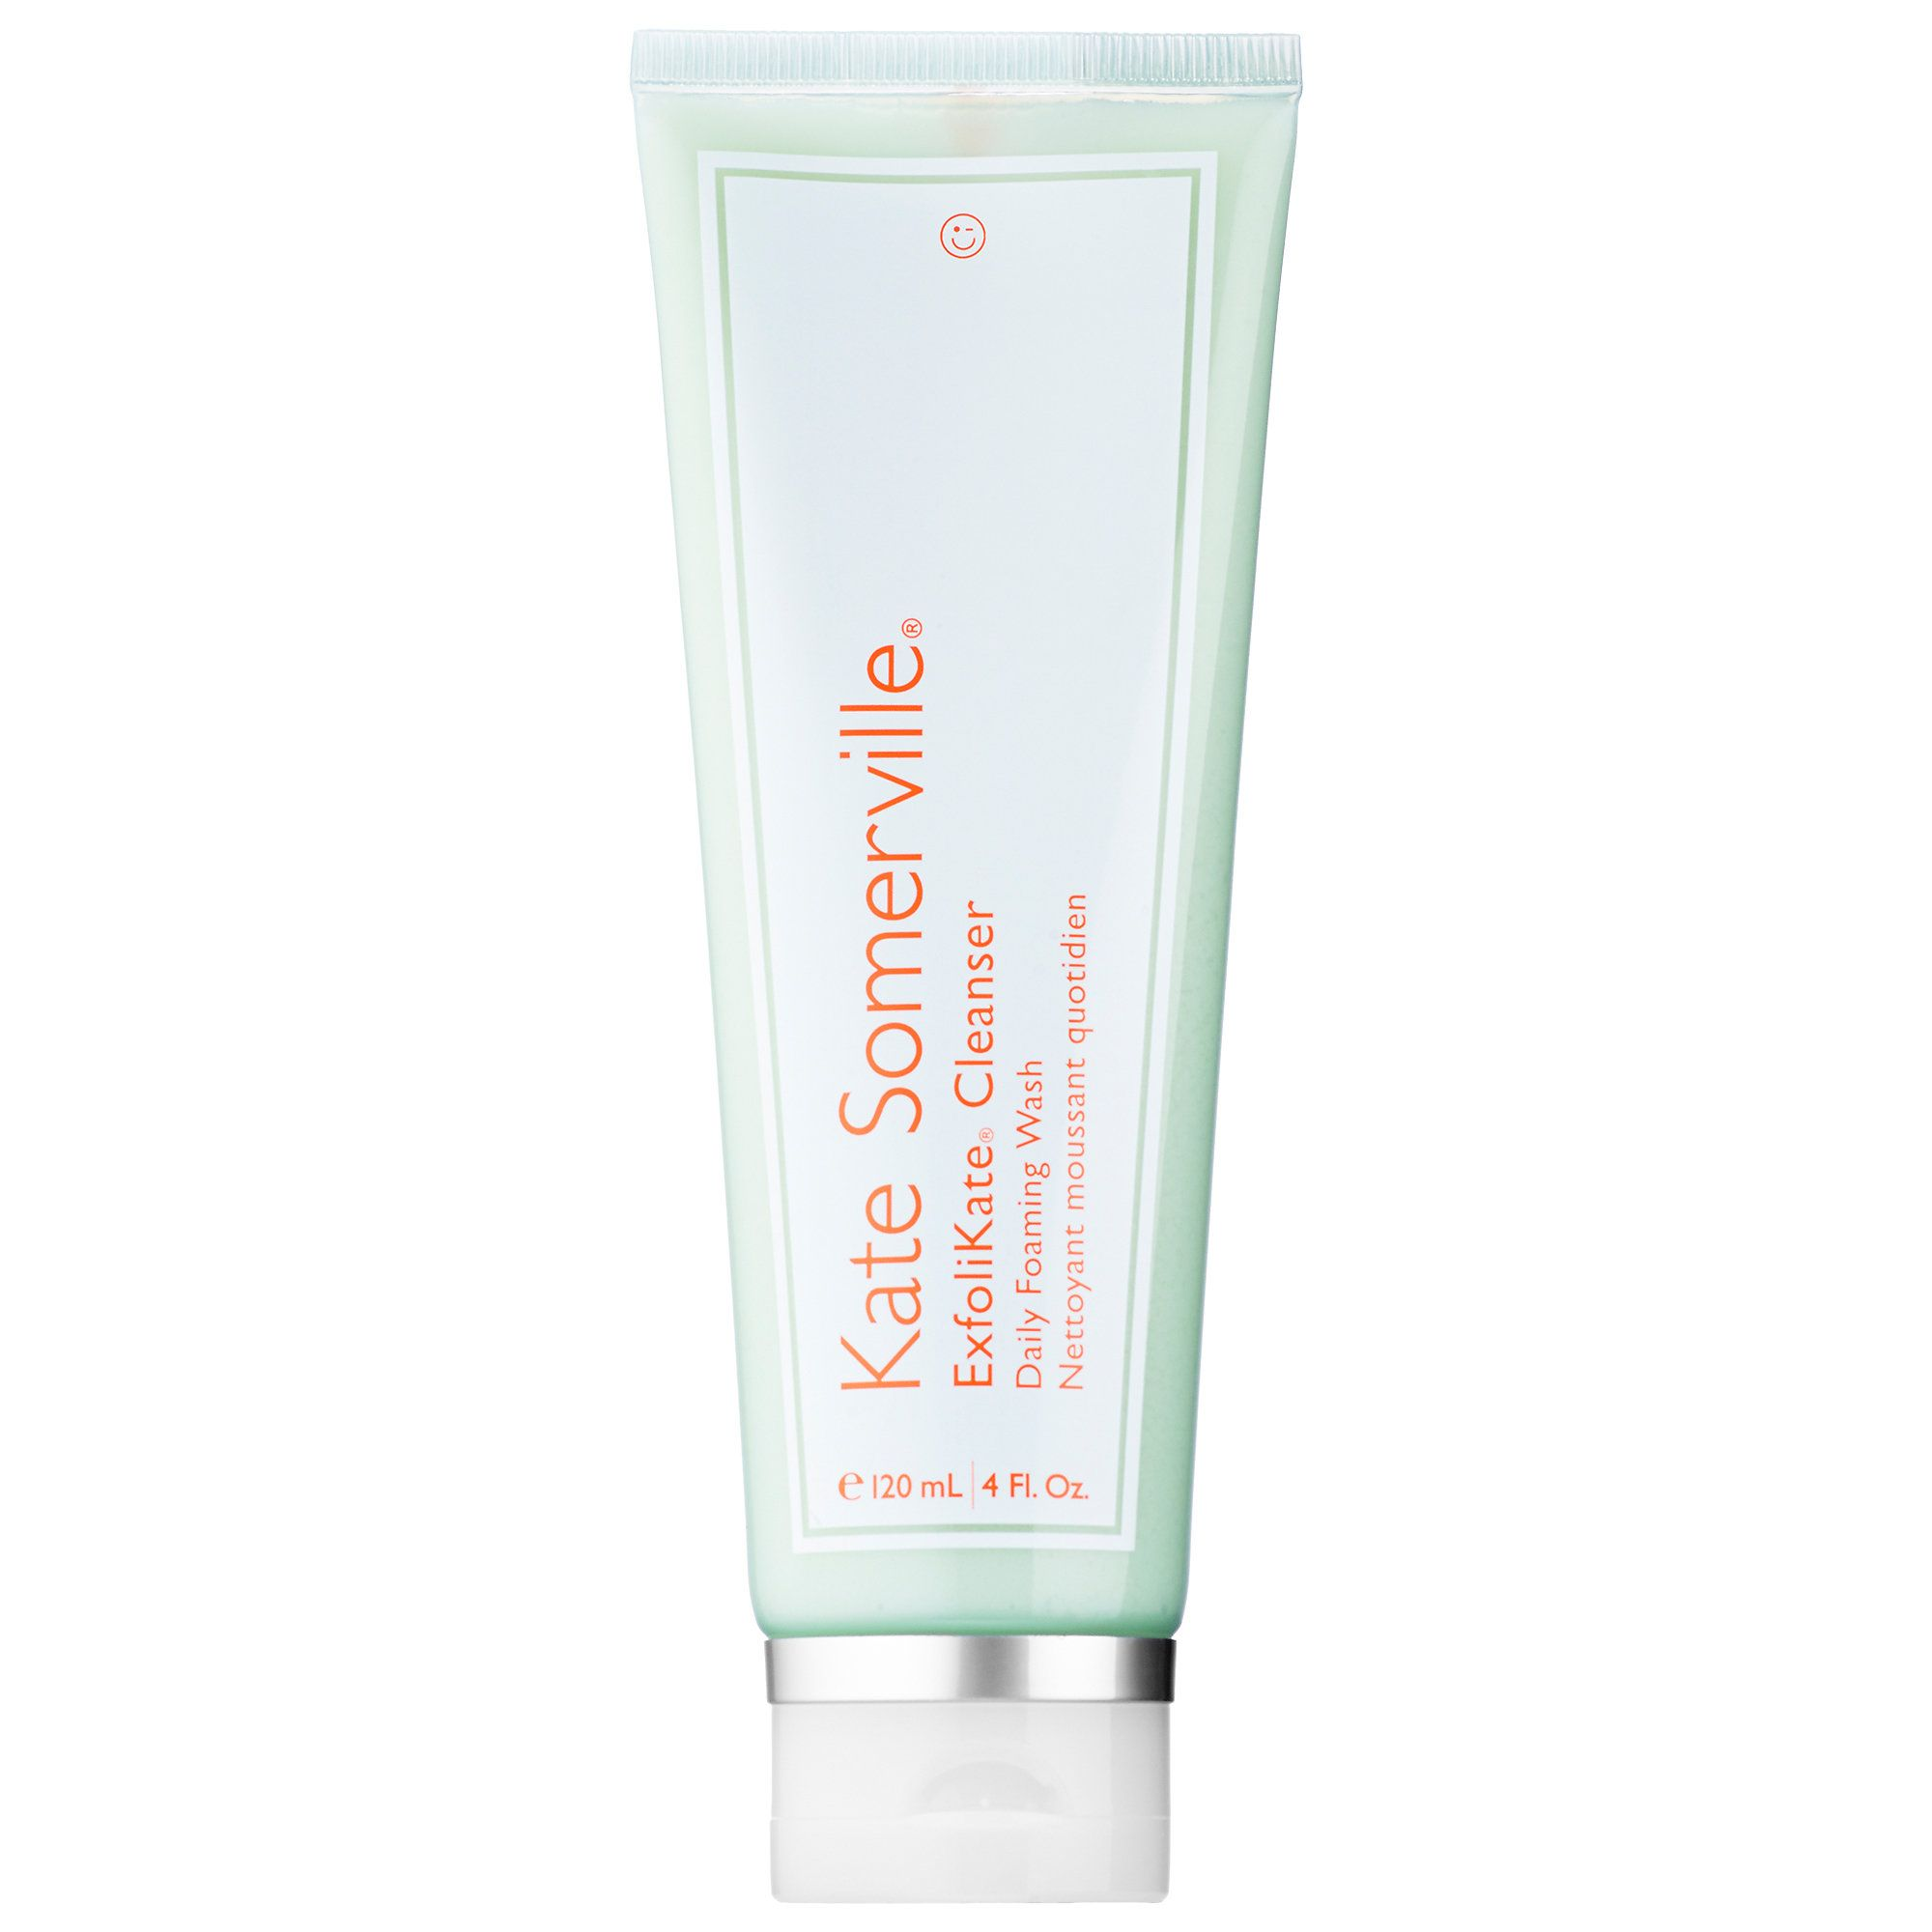 ExfoliKate Cleanser Daily Foaming Wash Reveal softer smoother skin